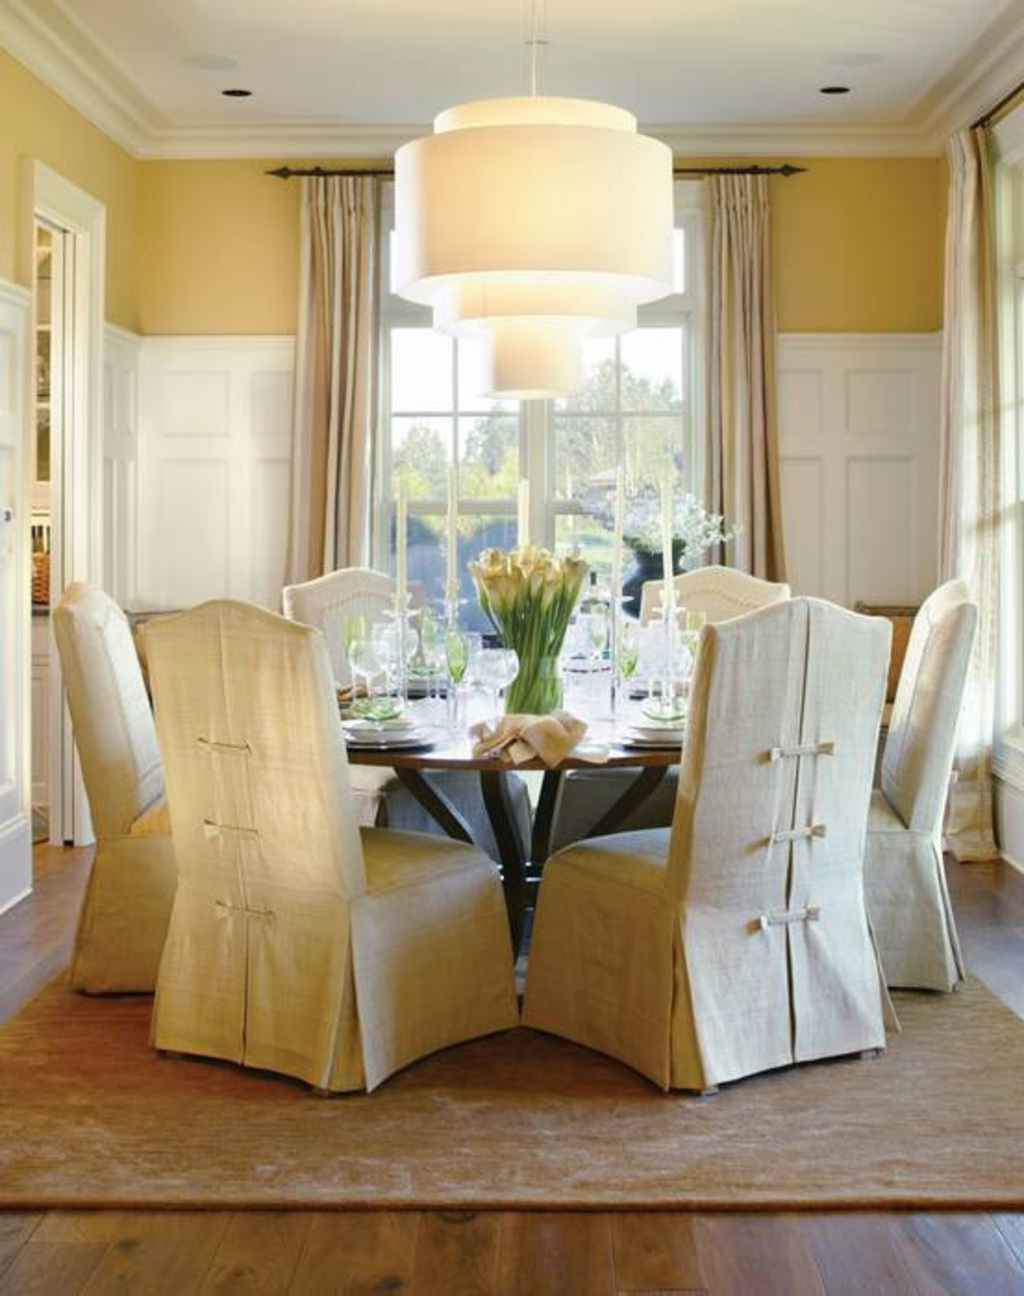 Chair Covers For Round Back Chairs, Round Back Dining Room Chair Covers